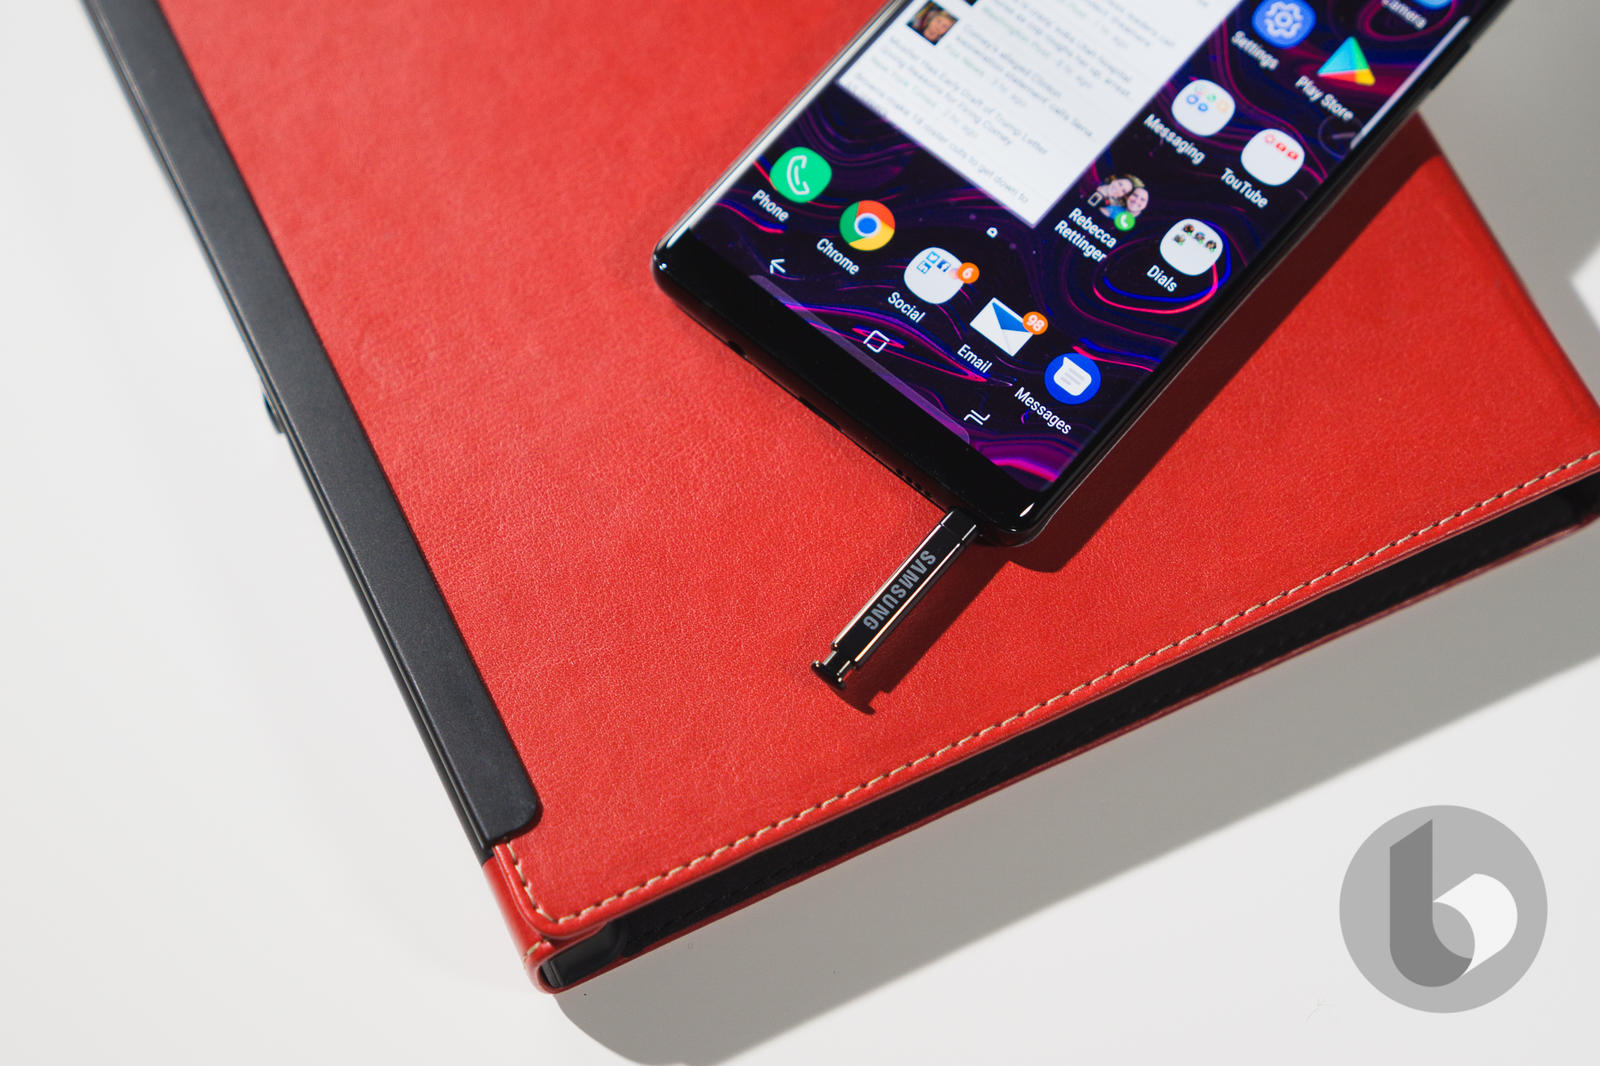 Galaxy Note 8 review: Is the Note's comeback worth the wait